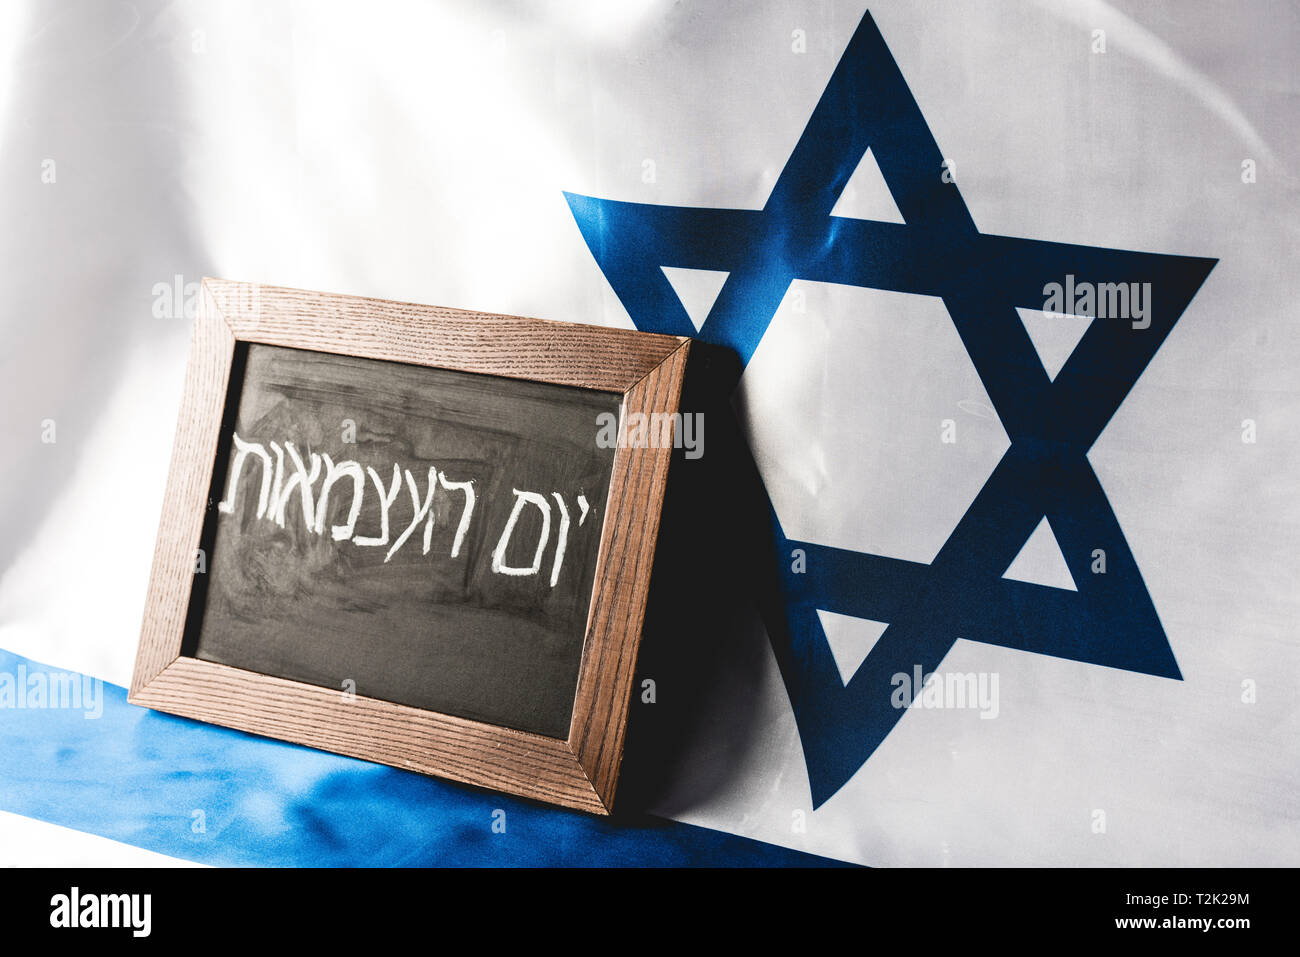 chalkboard with hebrew lettering near national flag of israel - Stock Image